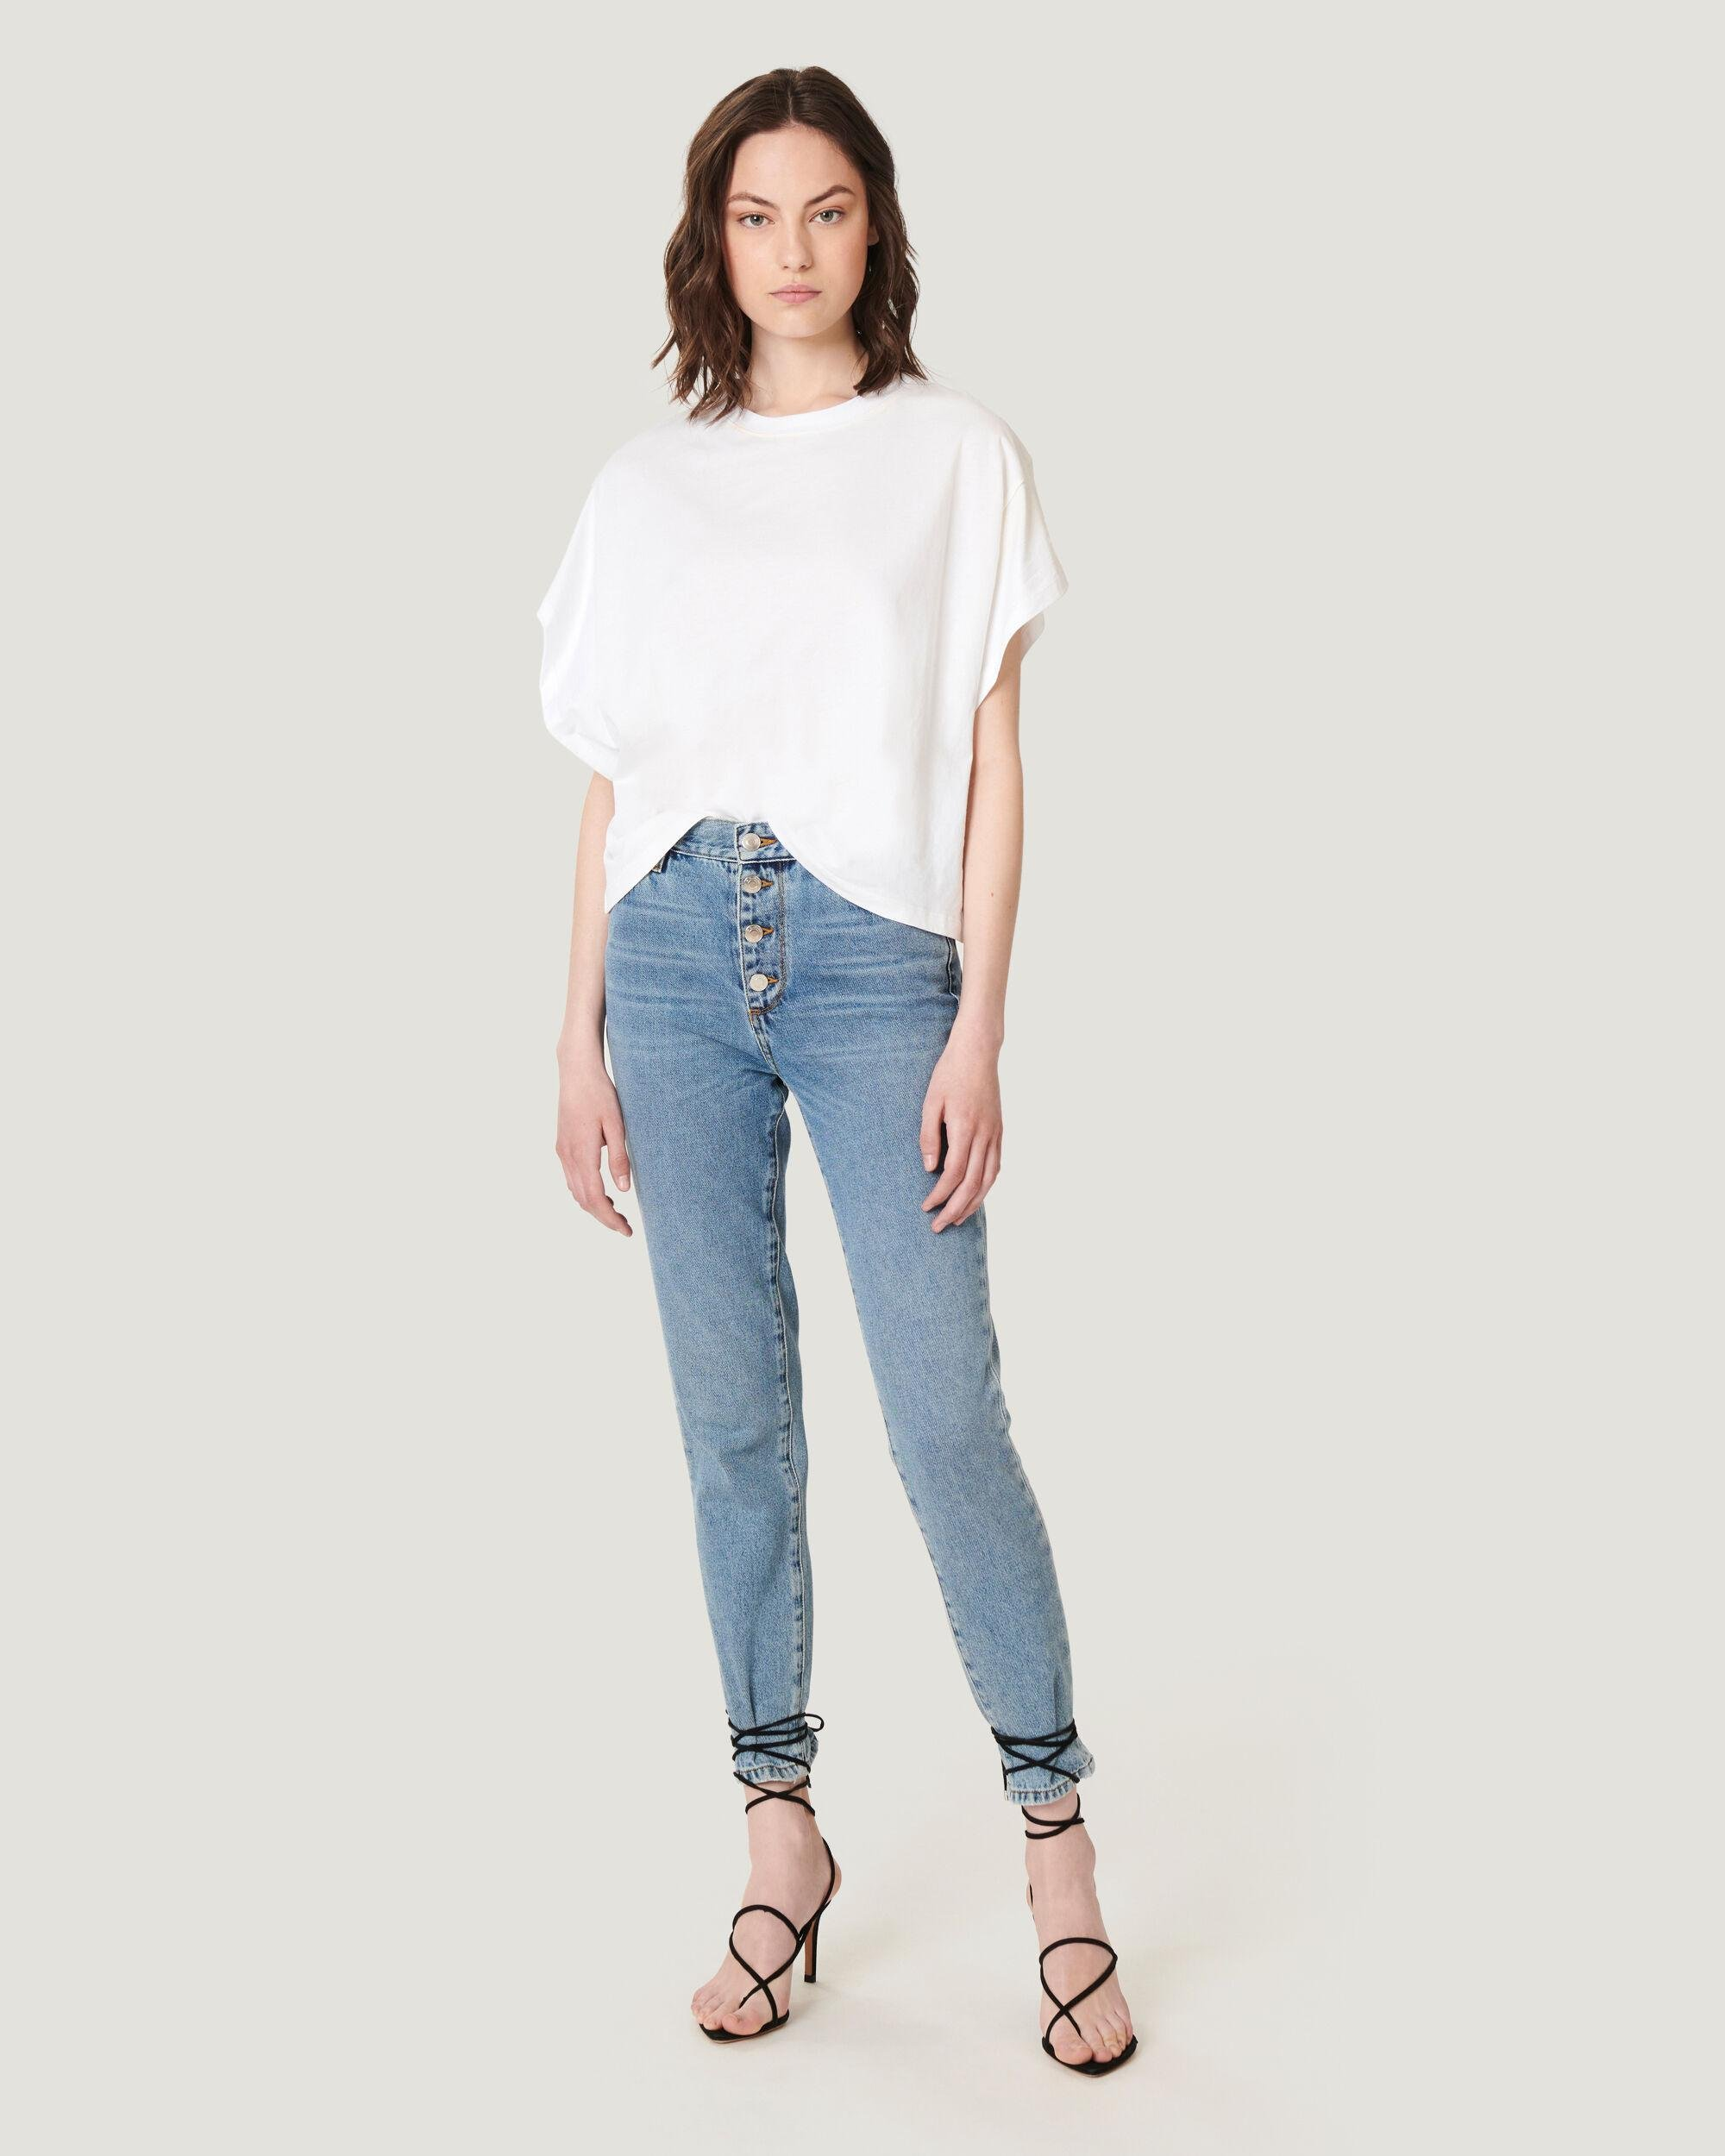 NEVY CROPPED BUTTON SKINNY JEANS